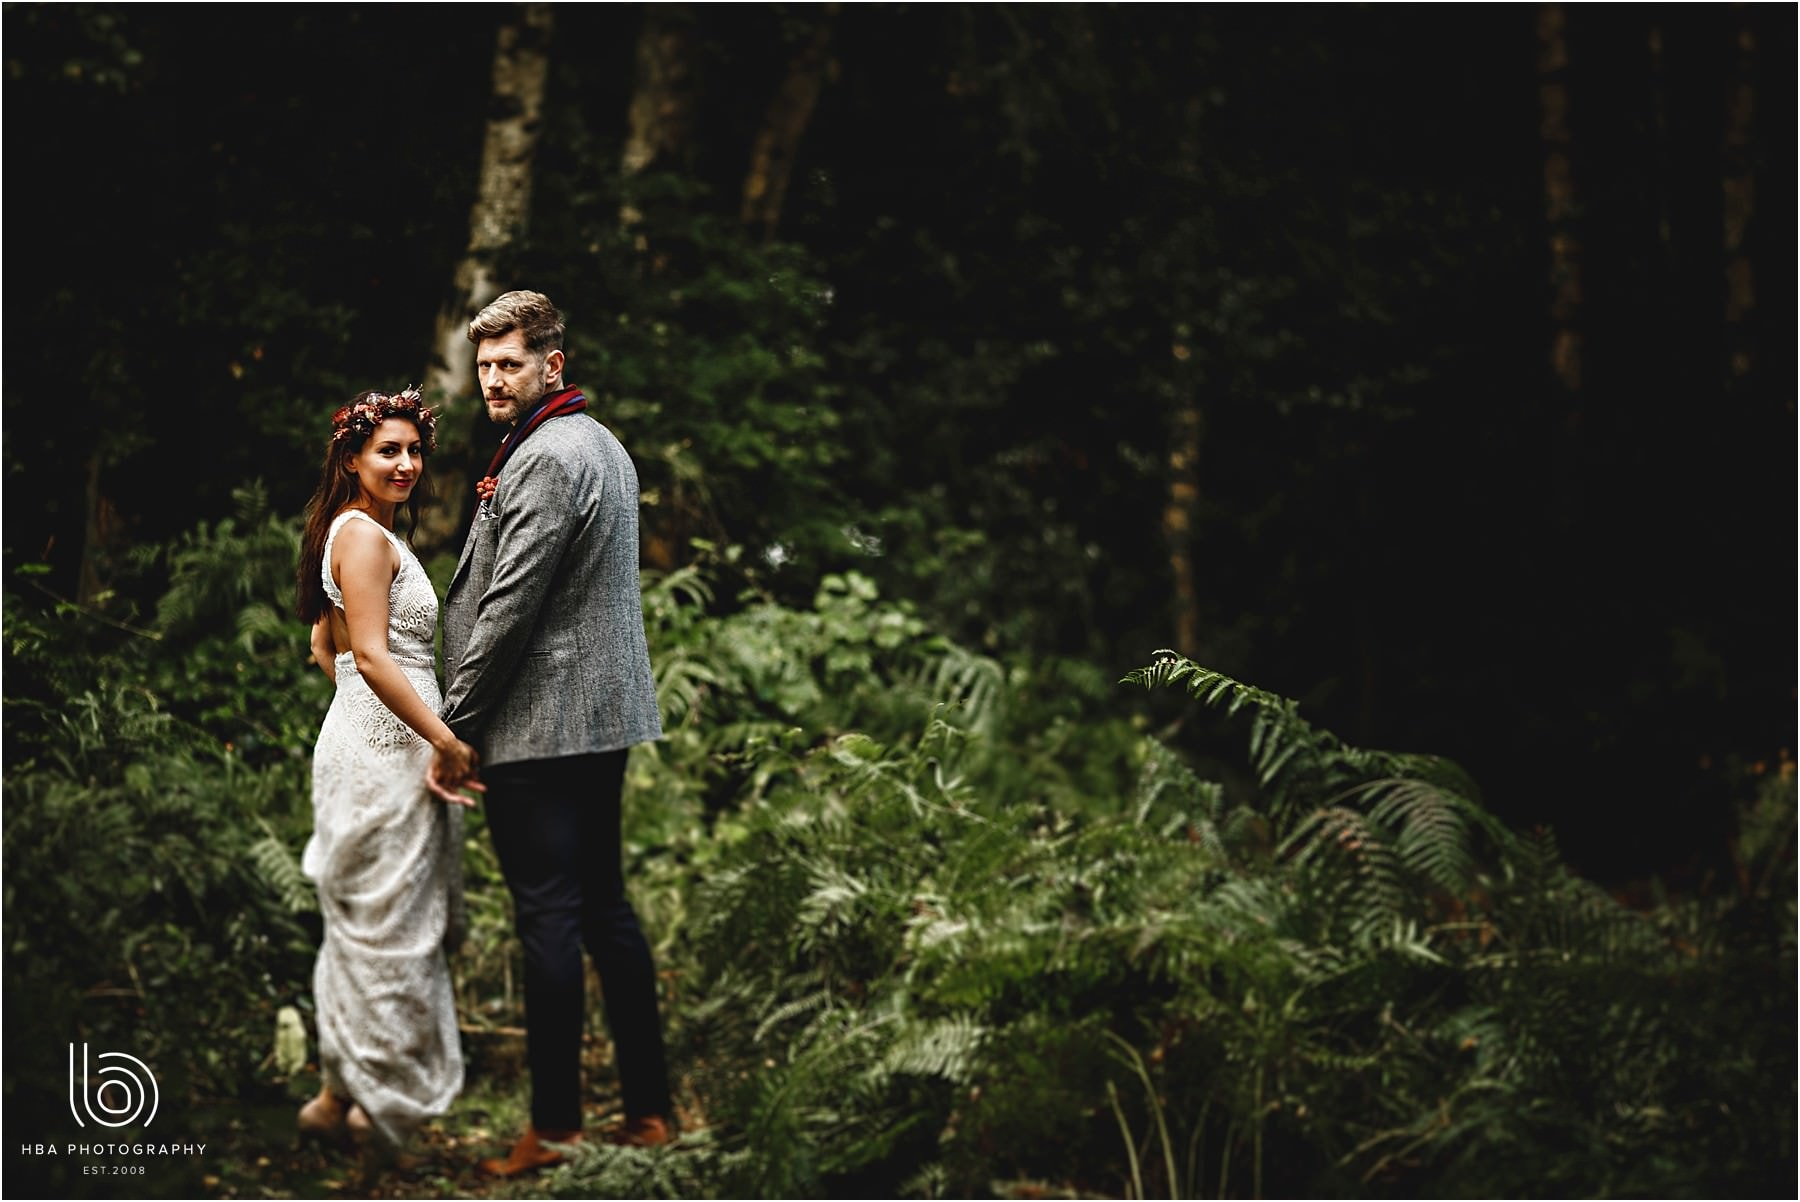 The bride and groom together in the woods on their wedding day